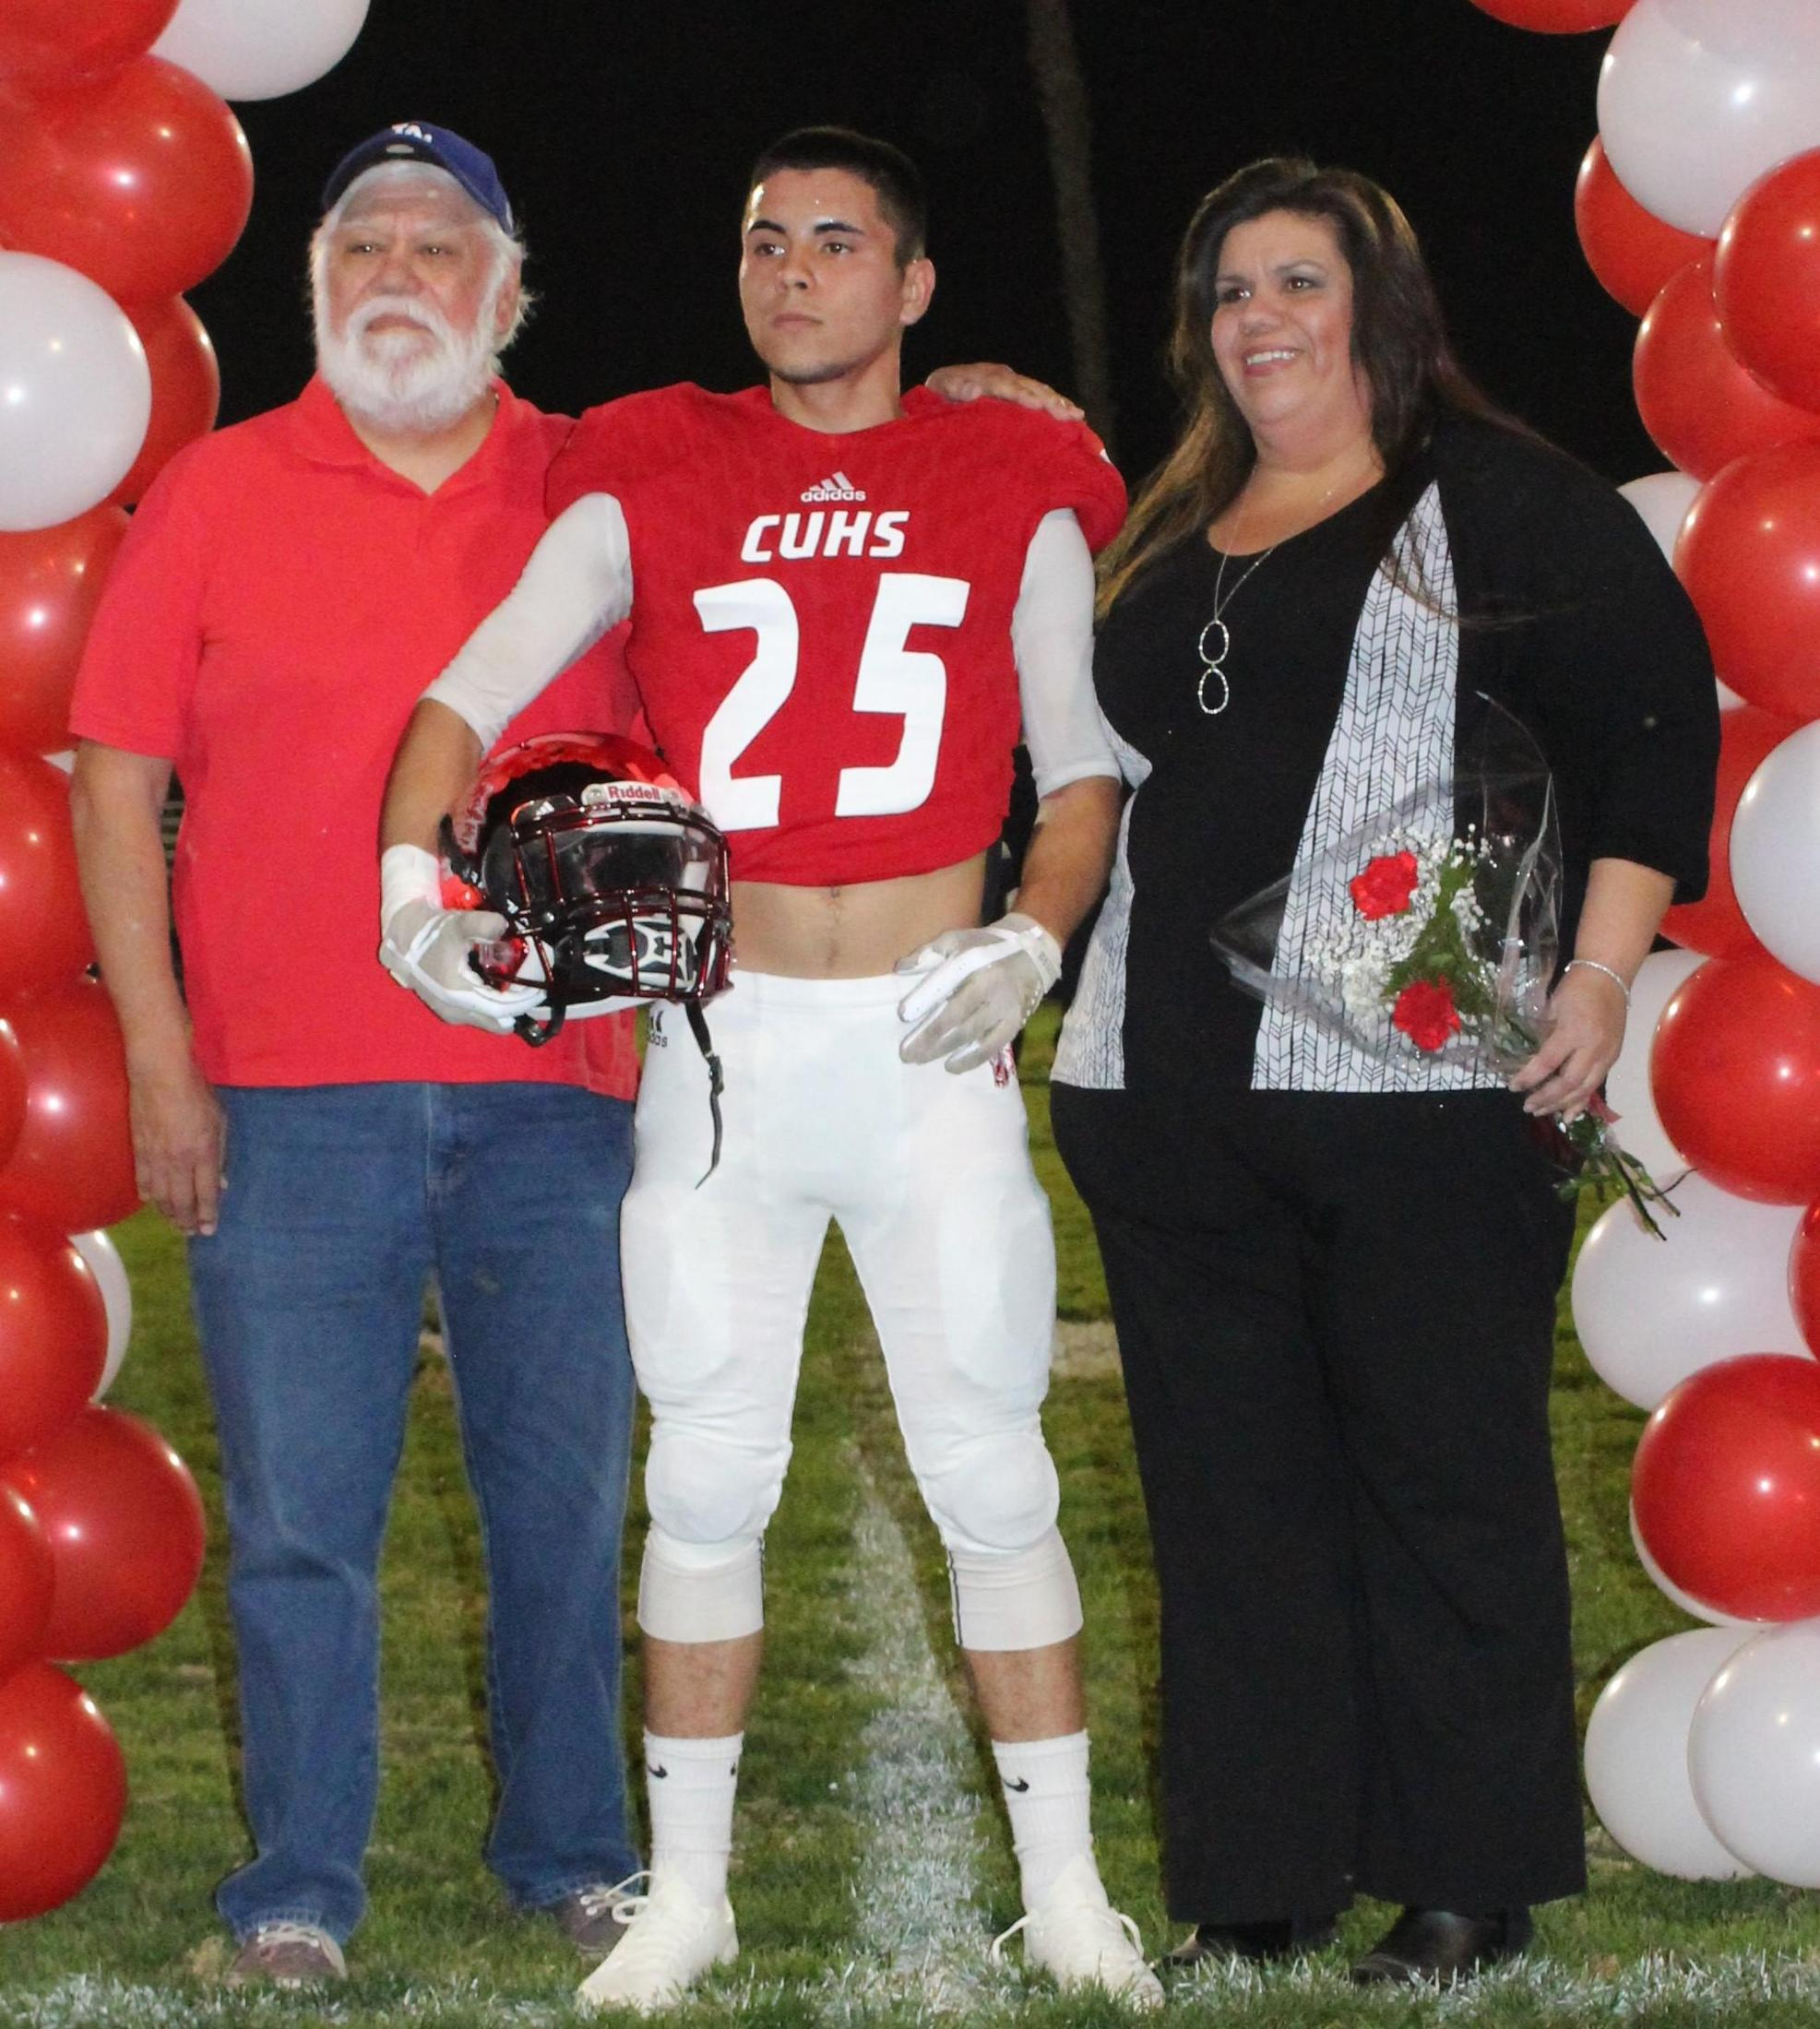 Eliseo Mendoza and his supporters at Senior Night.